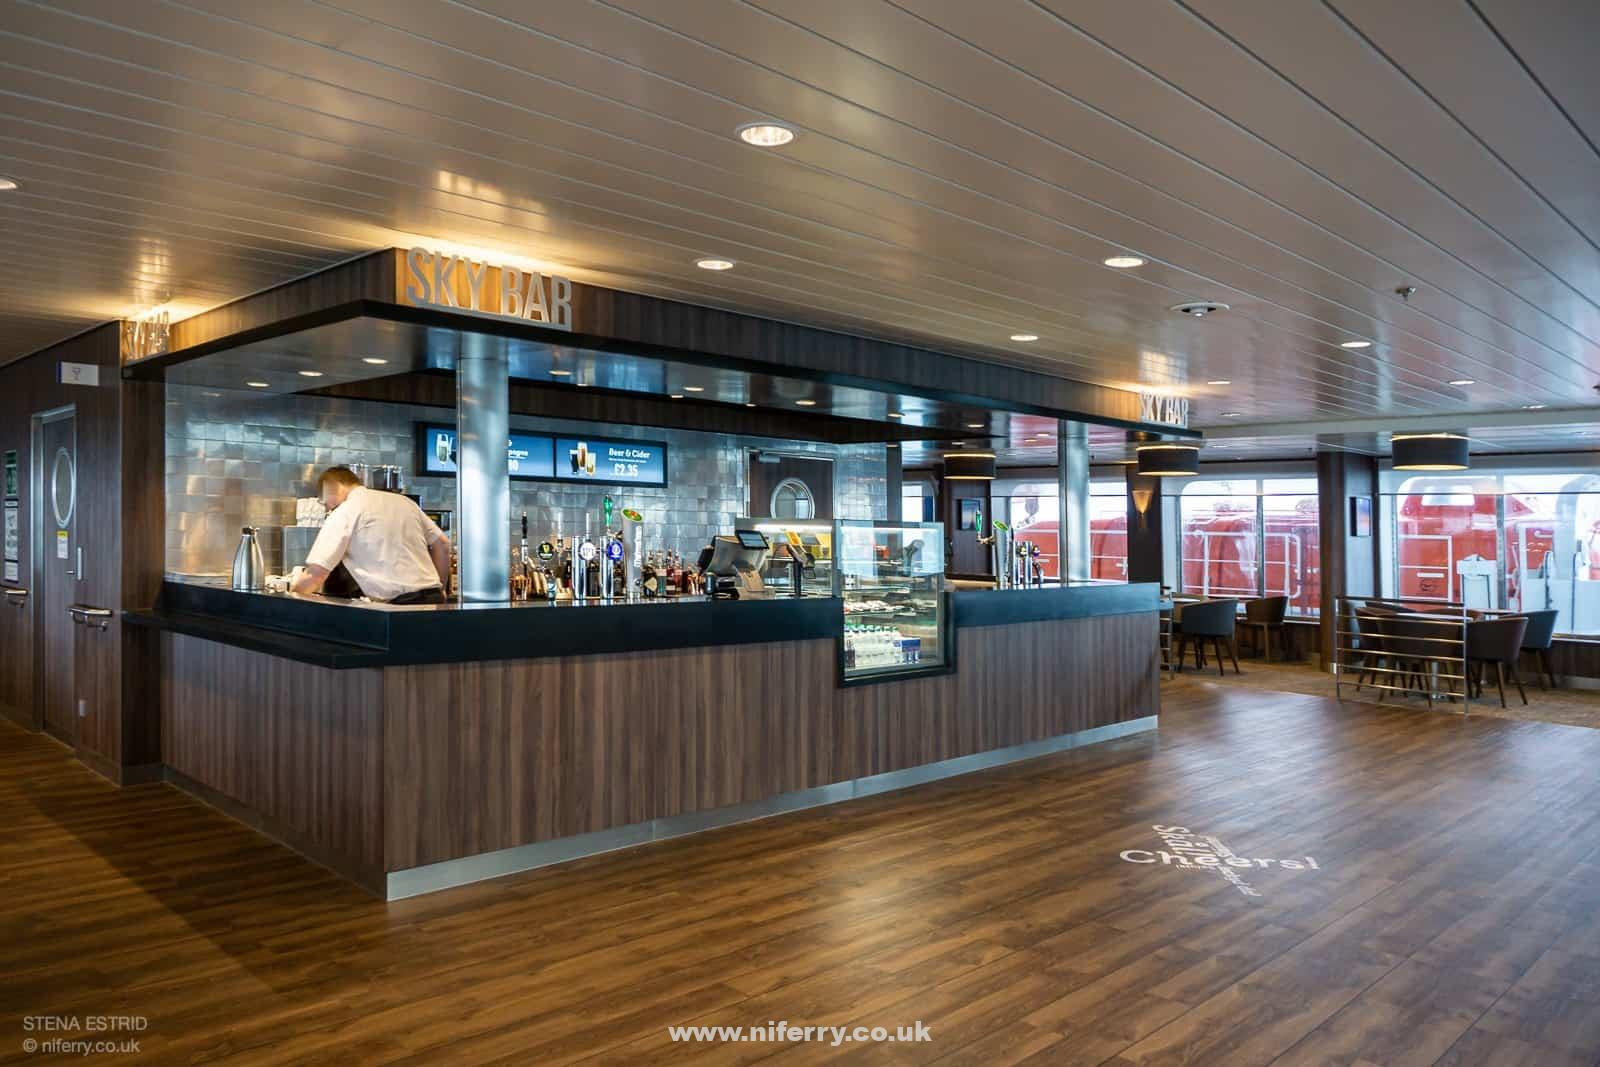 The Sky Bar counter, Deck 8, midships. © NIferry.co.uk.